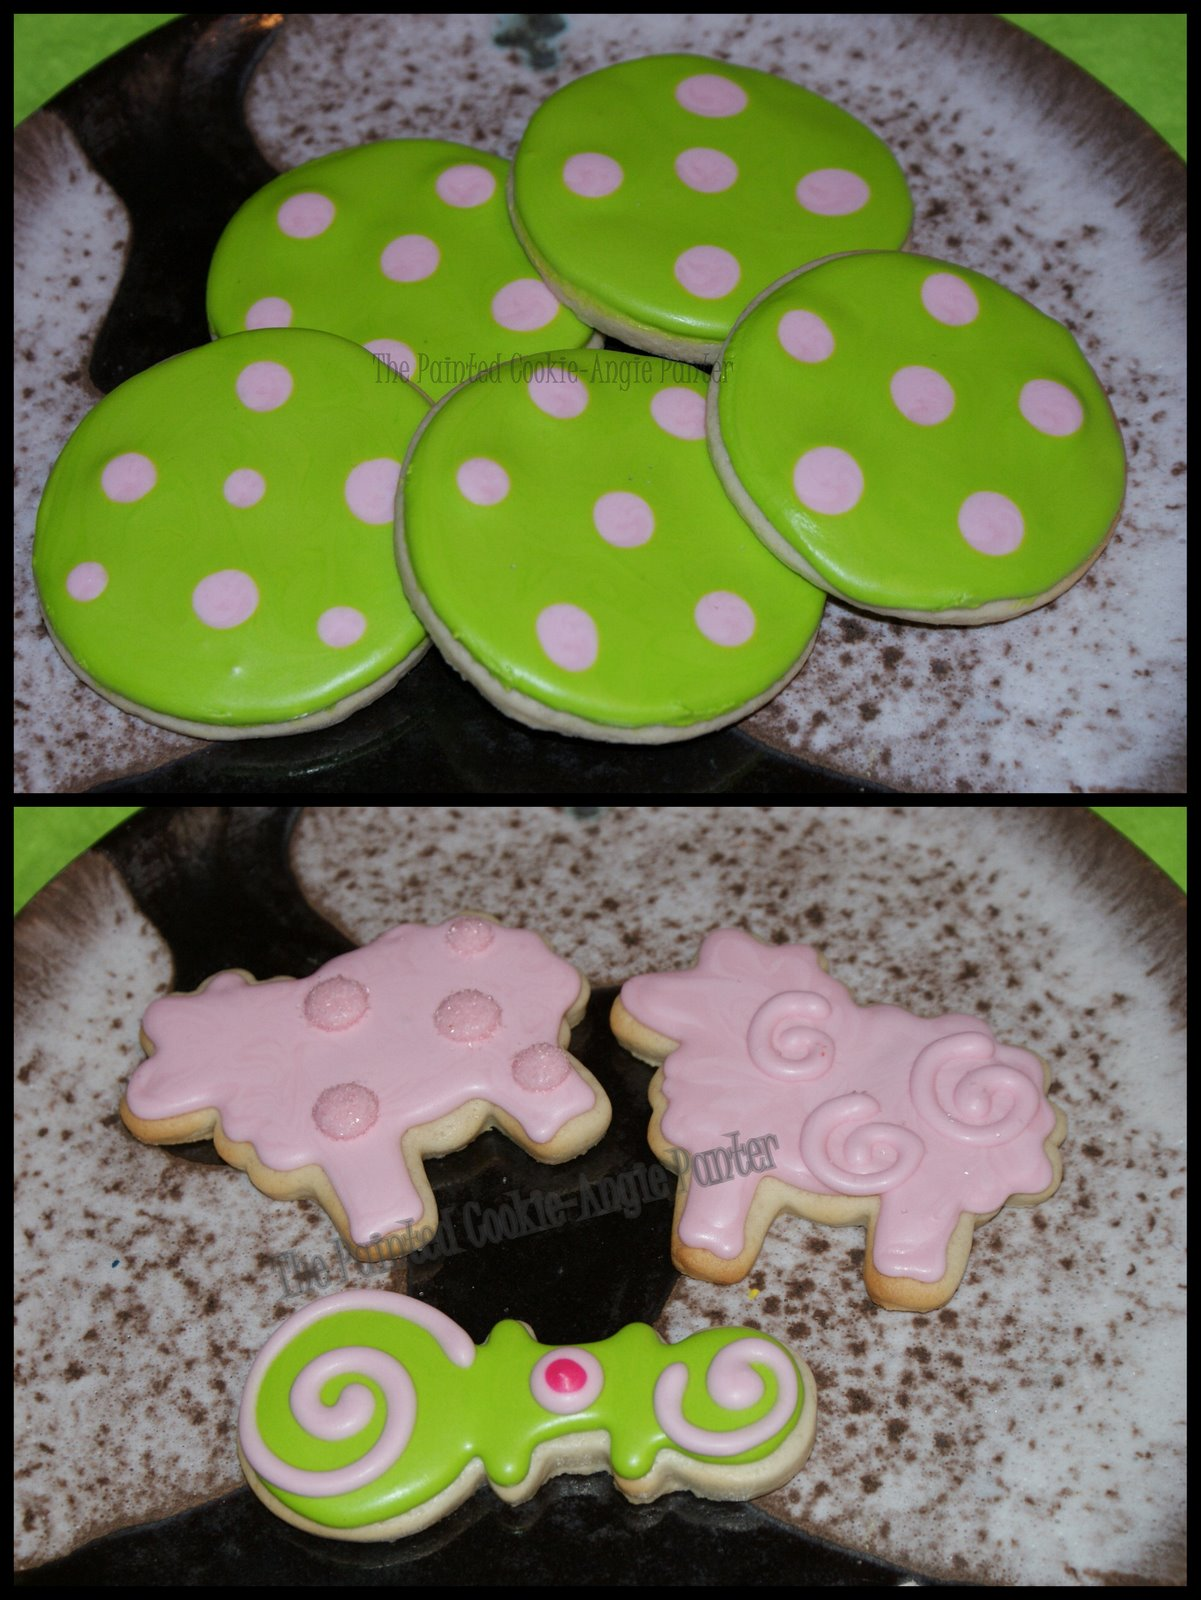 the painted cookie polka dot baby shower